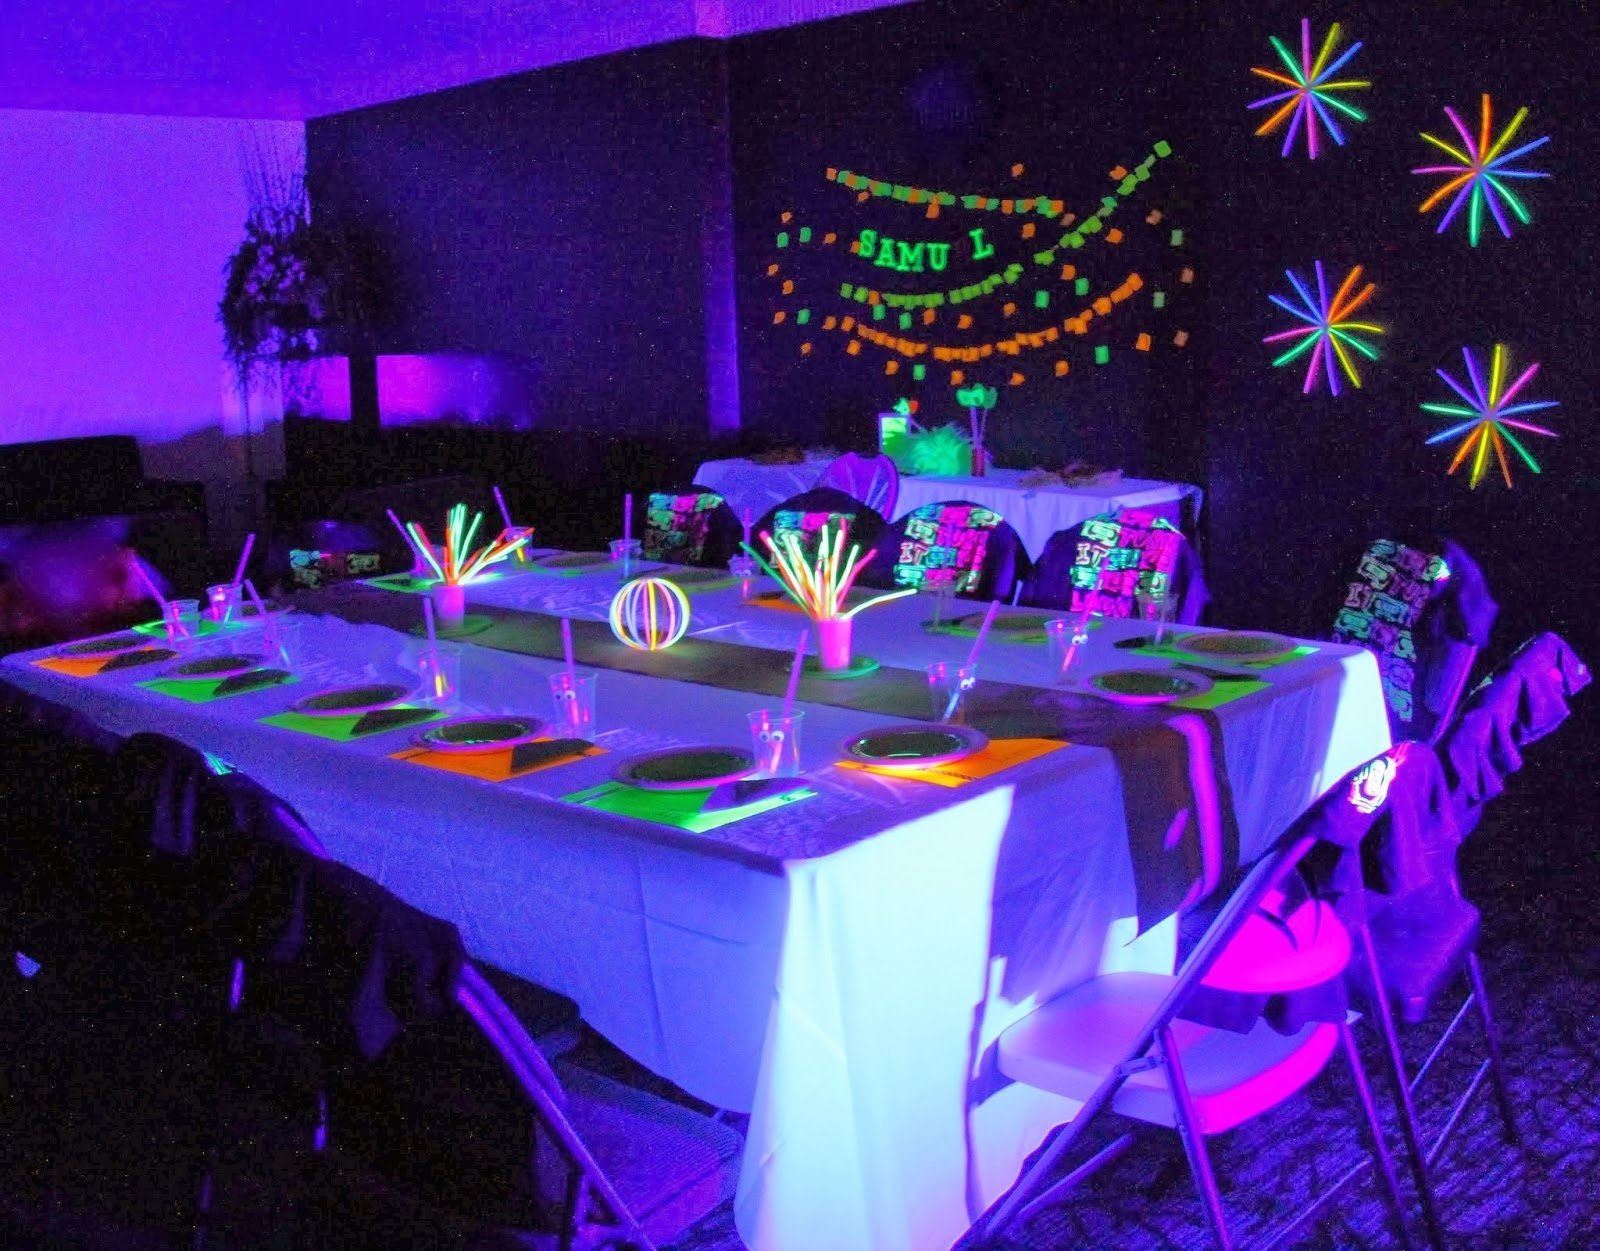 18th birthday party ideas that are grand for guys | whomestudio